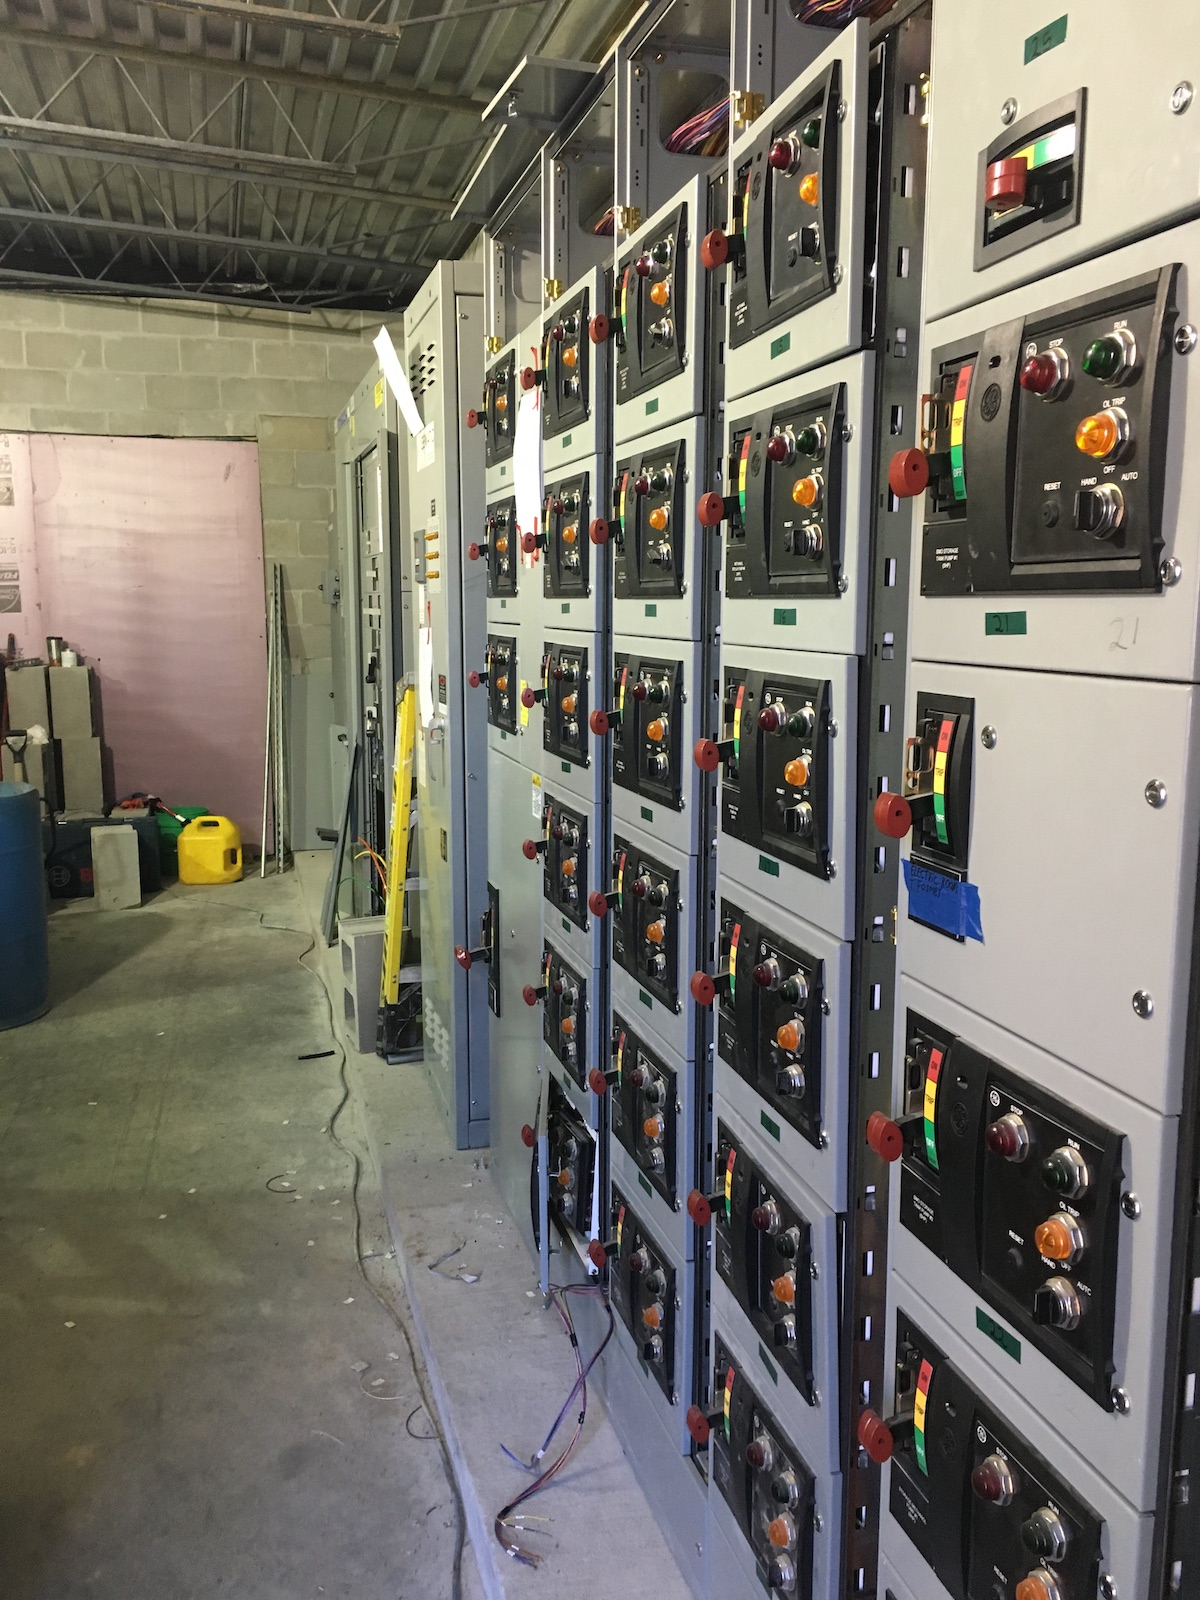 Image of industrial control panels within a facility needing round the clock service.